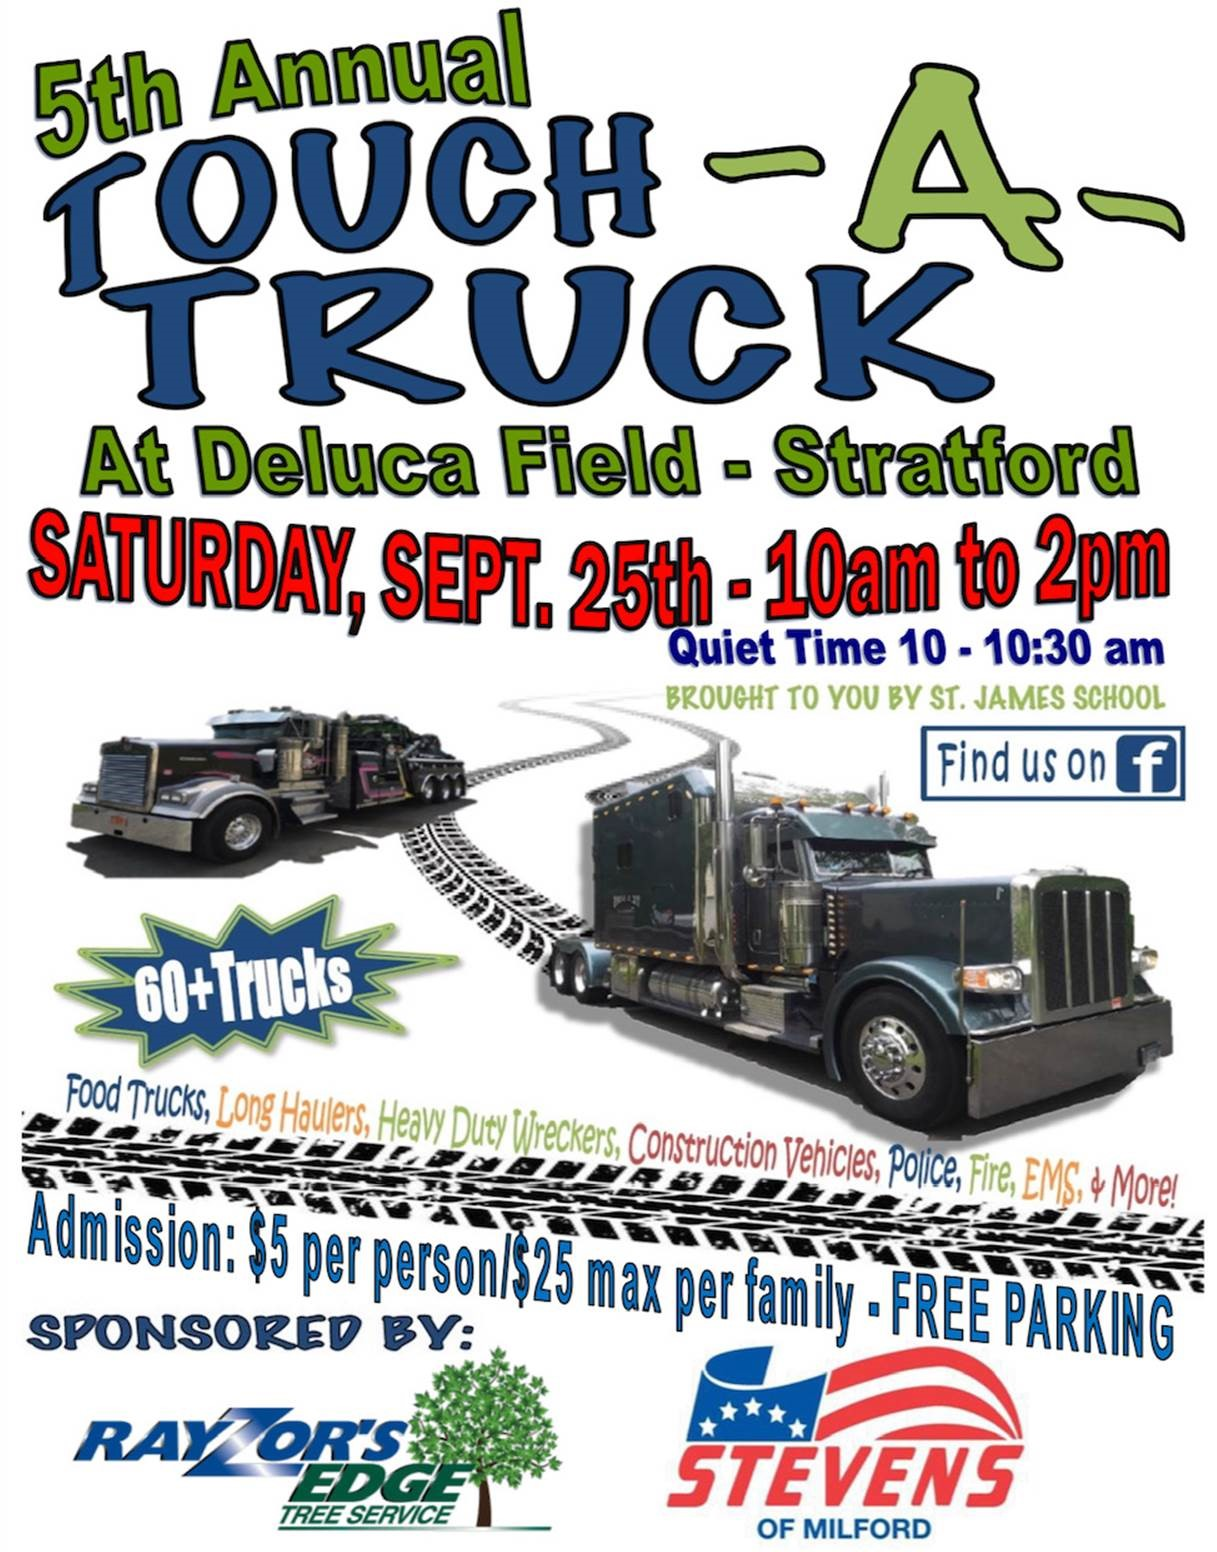 St. James Touch-A-Truck